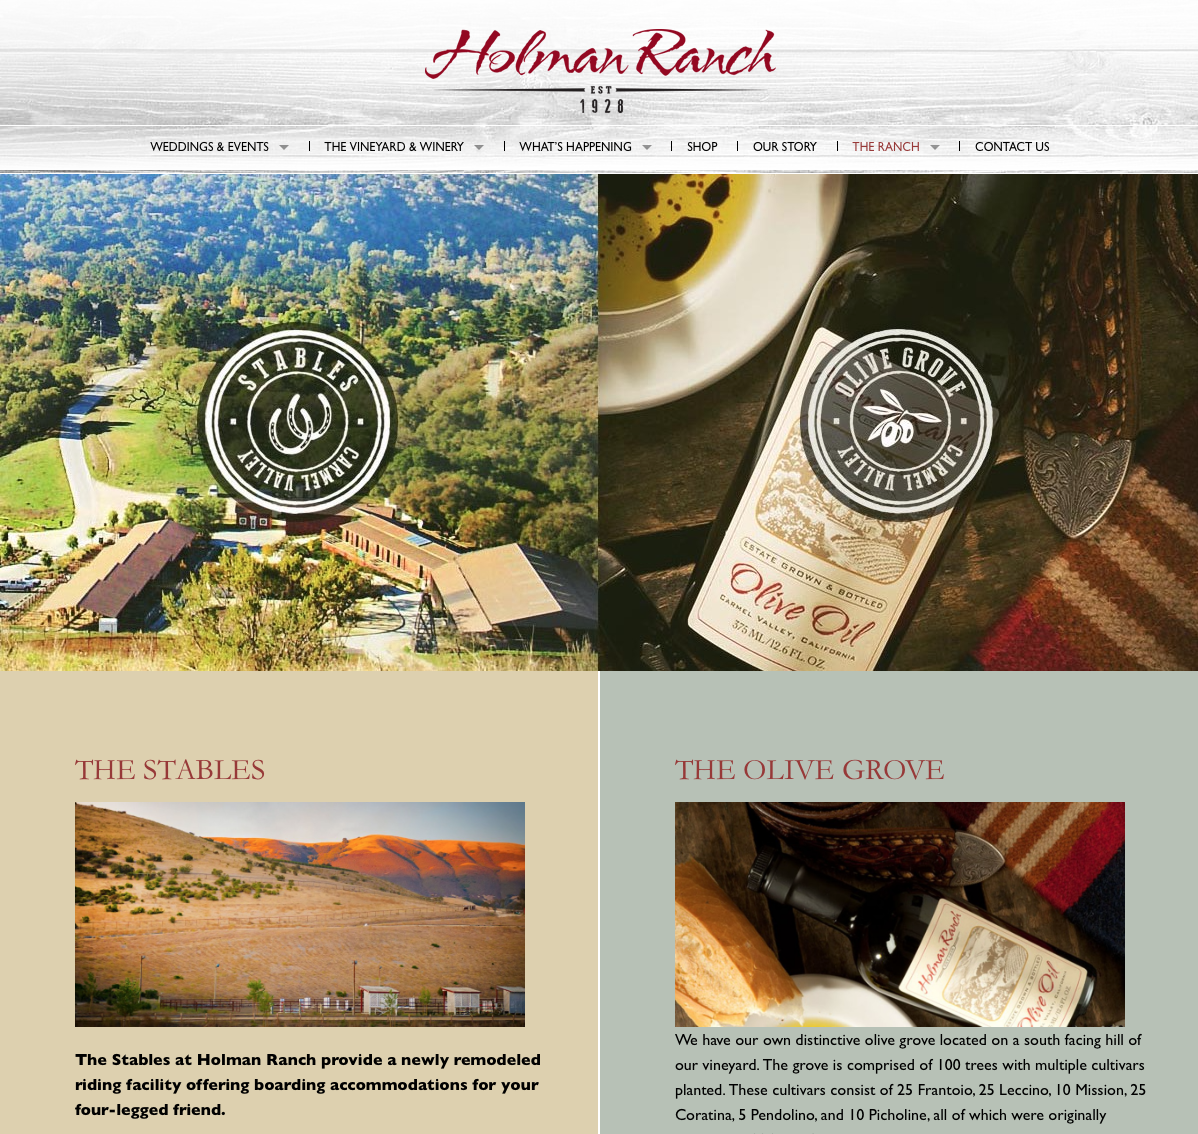 """Holman Ranch I Carmel, CA   Holman Ranch is elegant and sophisticated, yet charming and cozy, with understated elegance all around. Imagine sipping estate-grown wine in our stunning vineyards, exchanging vows al fresco among the rolling hills, tasting buttery and sumptuous house-pressed olive oil at your rehearsal dinner in our enchanting olive orchard, indulging in the Ranch's gorgeous grounds, and more.  We only hold one wedding at a time, ensuring an intimate ceremony for you and your guests.  The focal point of Holman Ranch is its recently restored 1928 Carmel stone hacienda, a magical estate that sits atop a grassy hill, offering breathtaking 360-degree views of the Santa Lucia Mountains. You can stay in the comfort of the most modern accommodations while being surrounded with the distinct feeling of the """"original ranch days"""".  With a breadth of options, your time at picturesque Holman Ranch should not be limited to just a ceremony. Once your vows have been exchanged, time for next steps, enjoy one of the Ranch's unforgettable experiences."""